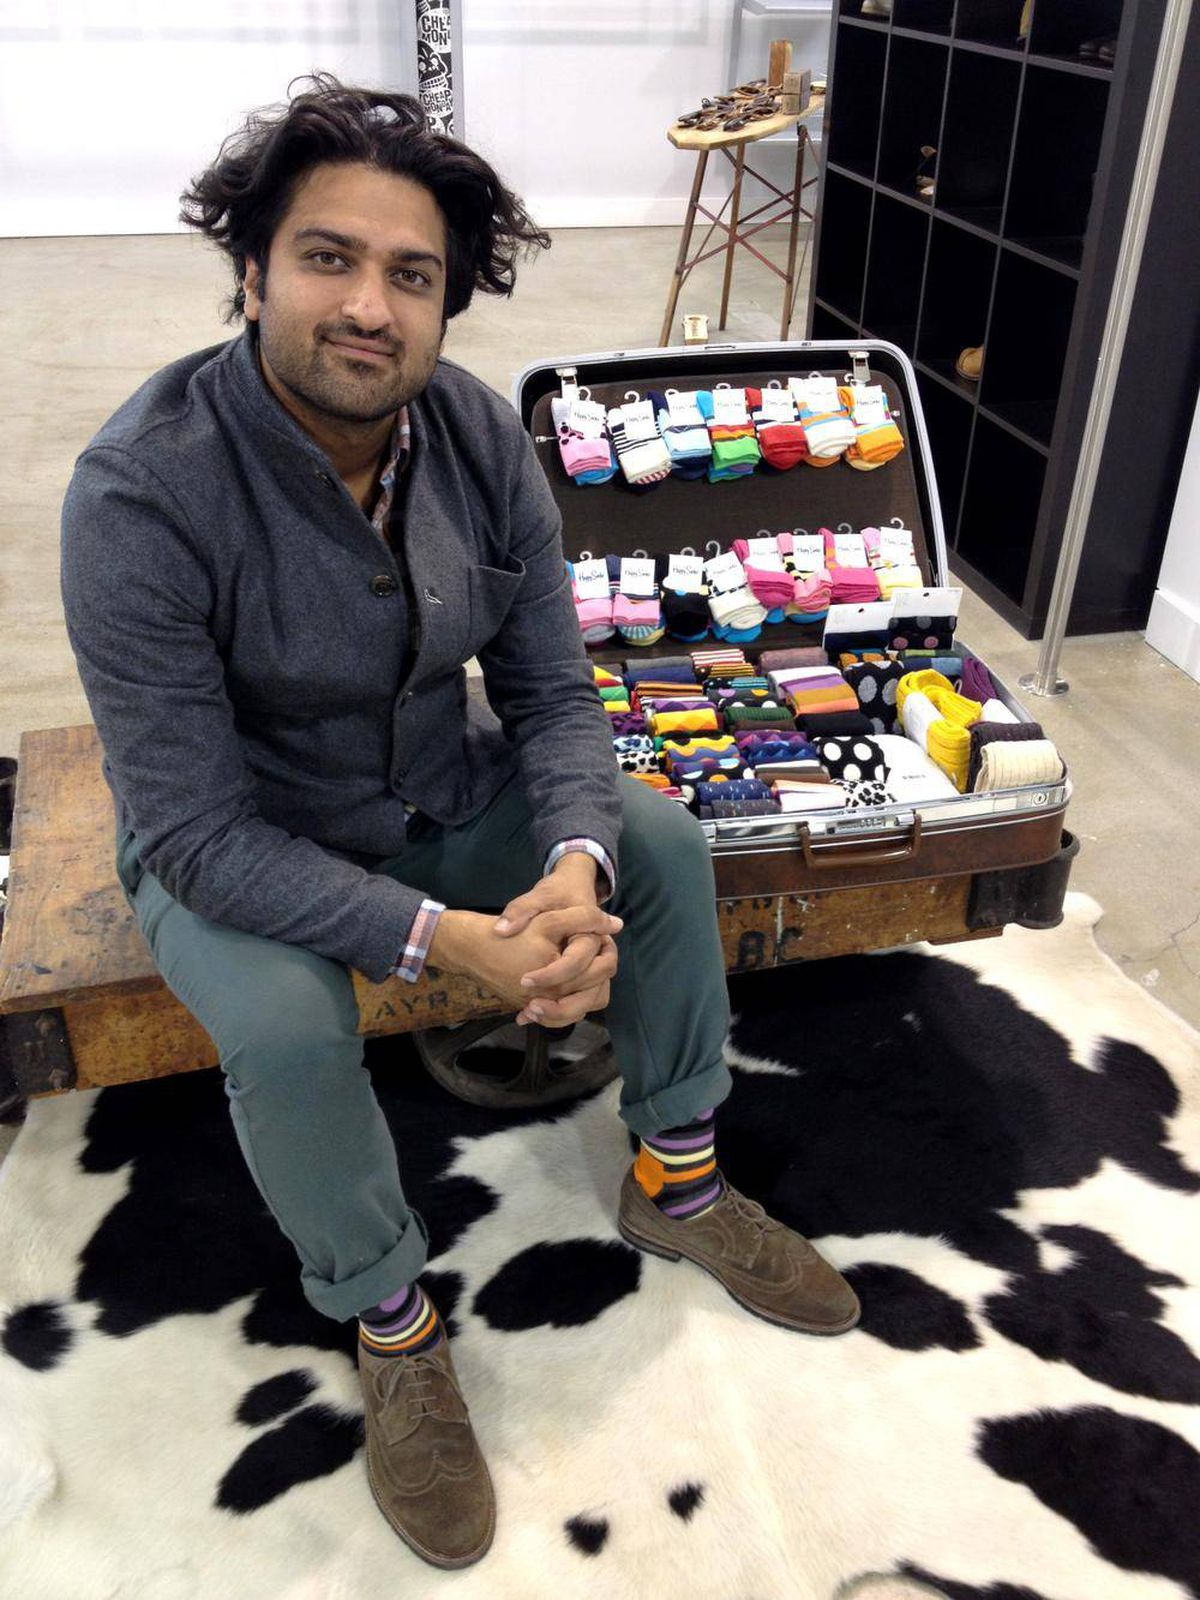 When a shipment of socks was delayed, Yousaf Khurshid of United Legwear Canada helped his customers come up with ways to recoup lost revenue.